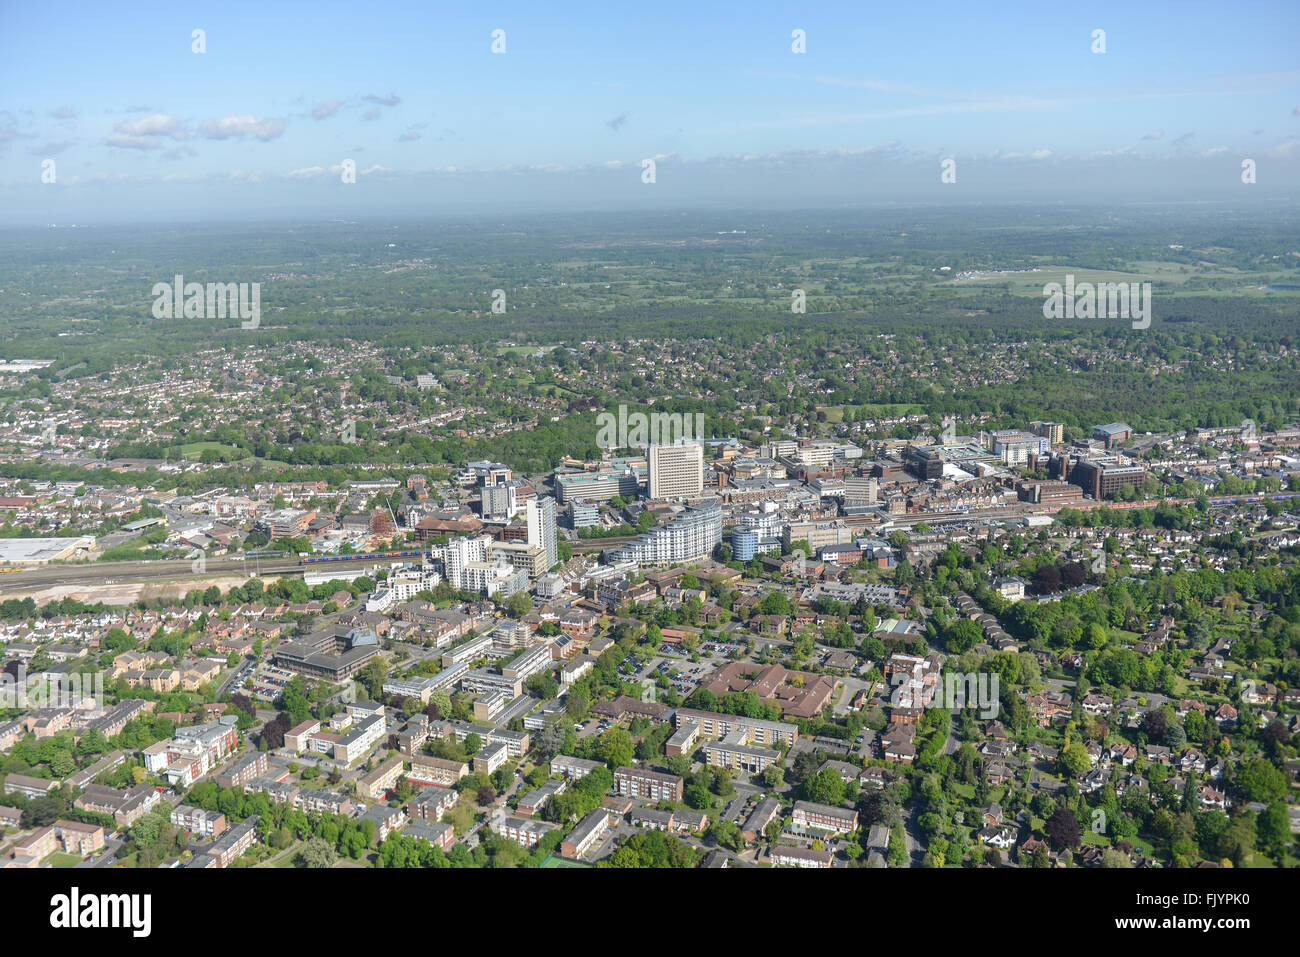 General aerial views of the Surrey town of Woking - Stock Image